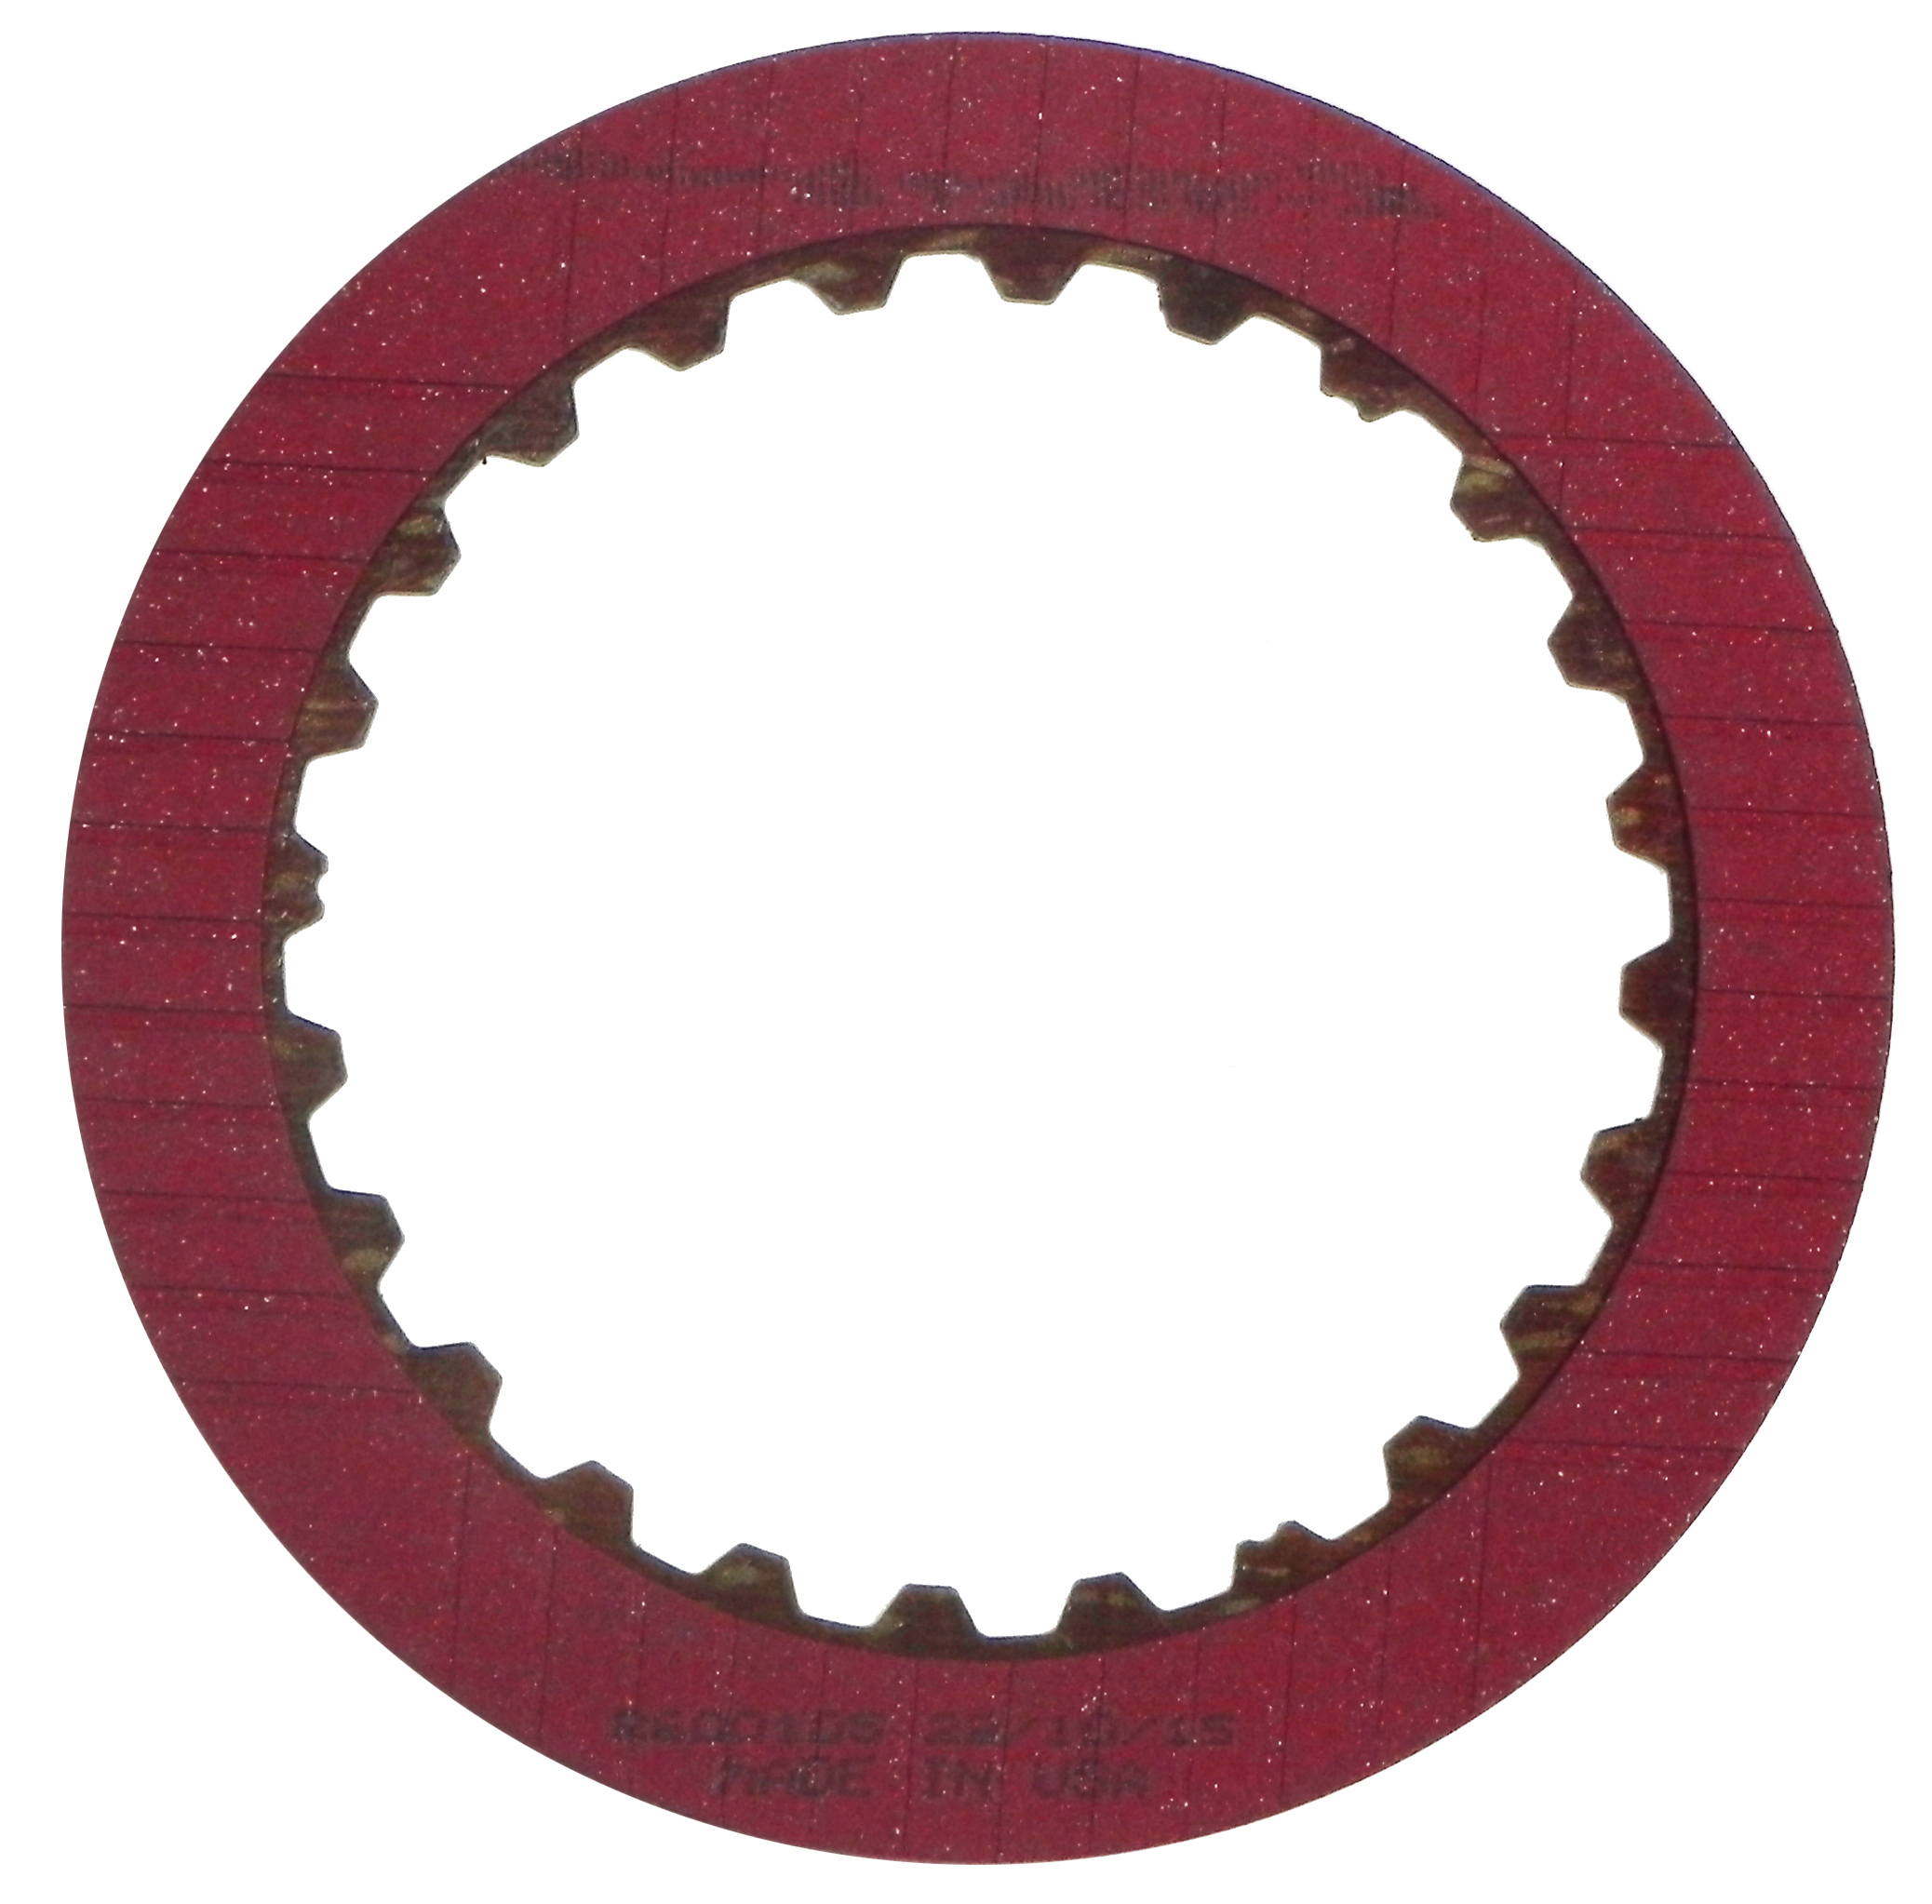 722.6 (W5A330, W5A580) Stage-1™ Friction Clutch Plate